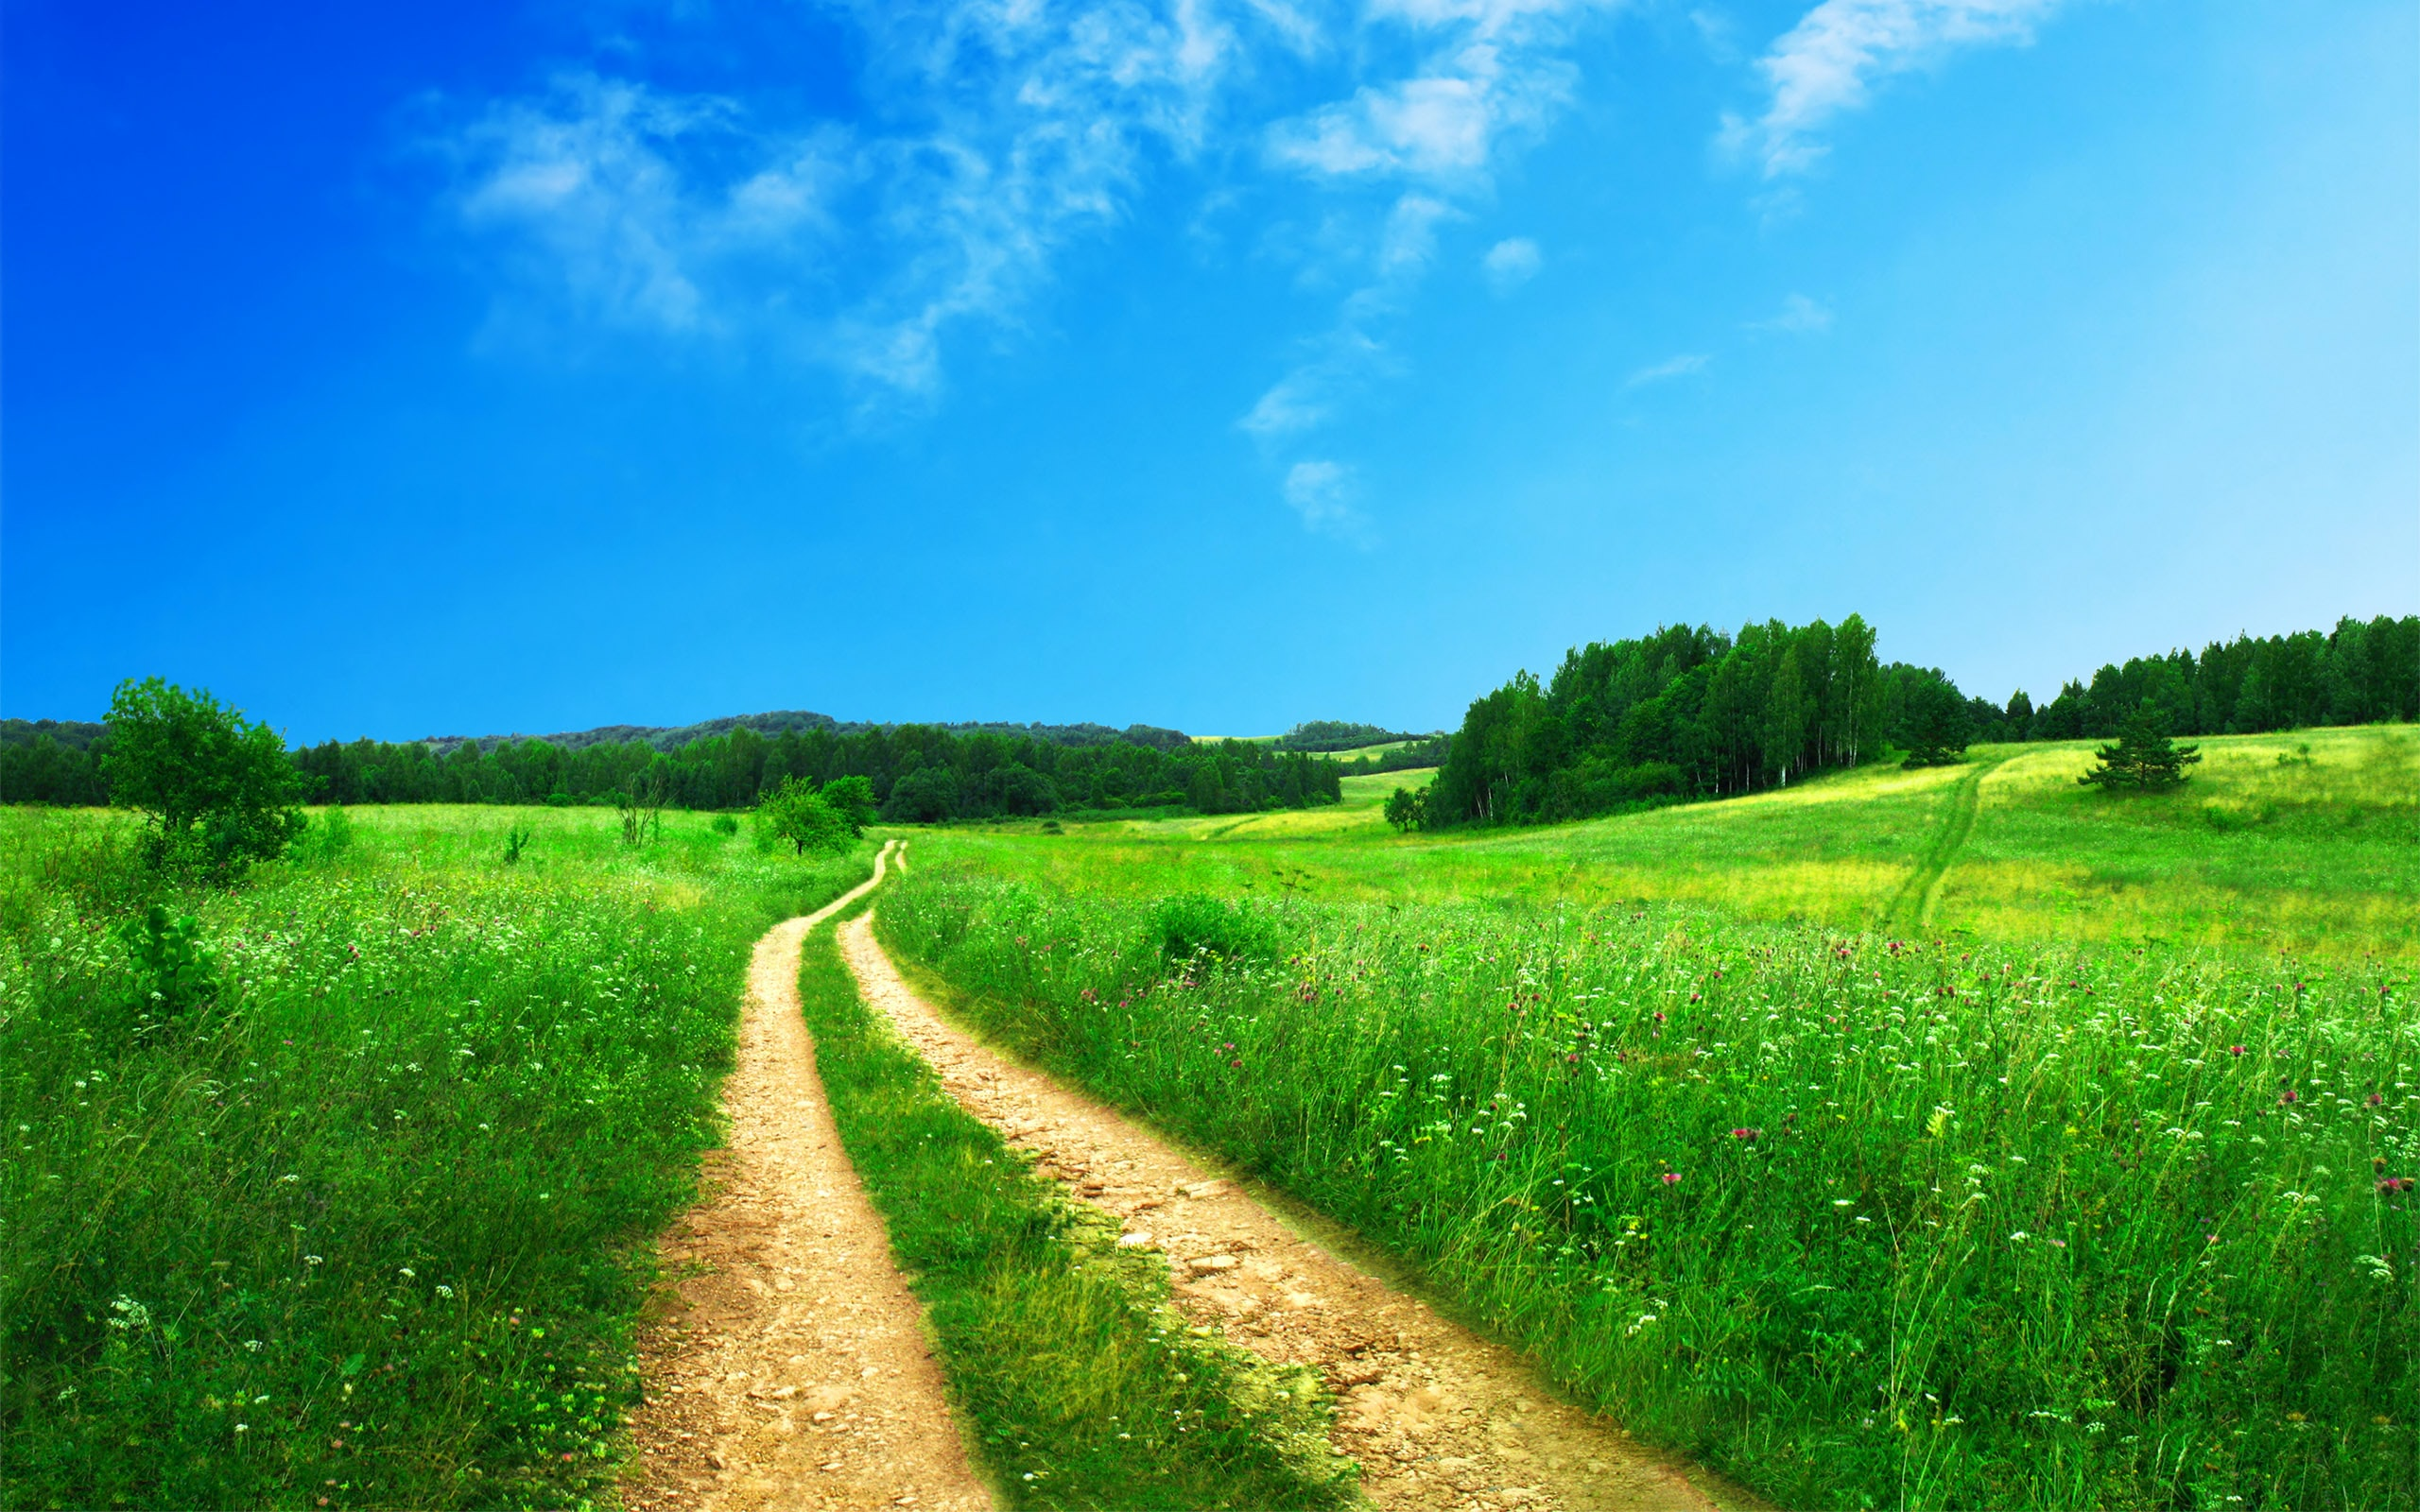 Country dirt road with beautiful scenic grassy landscape and clear blue sky in Spring